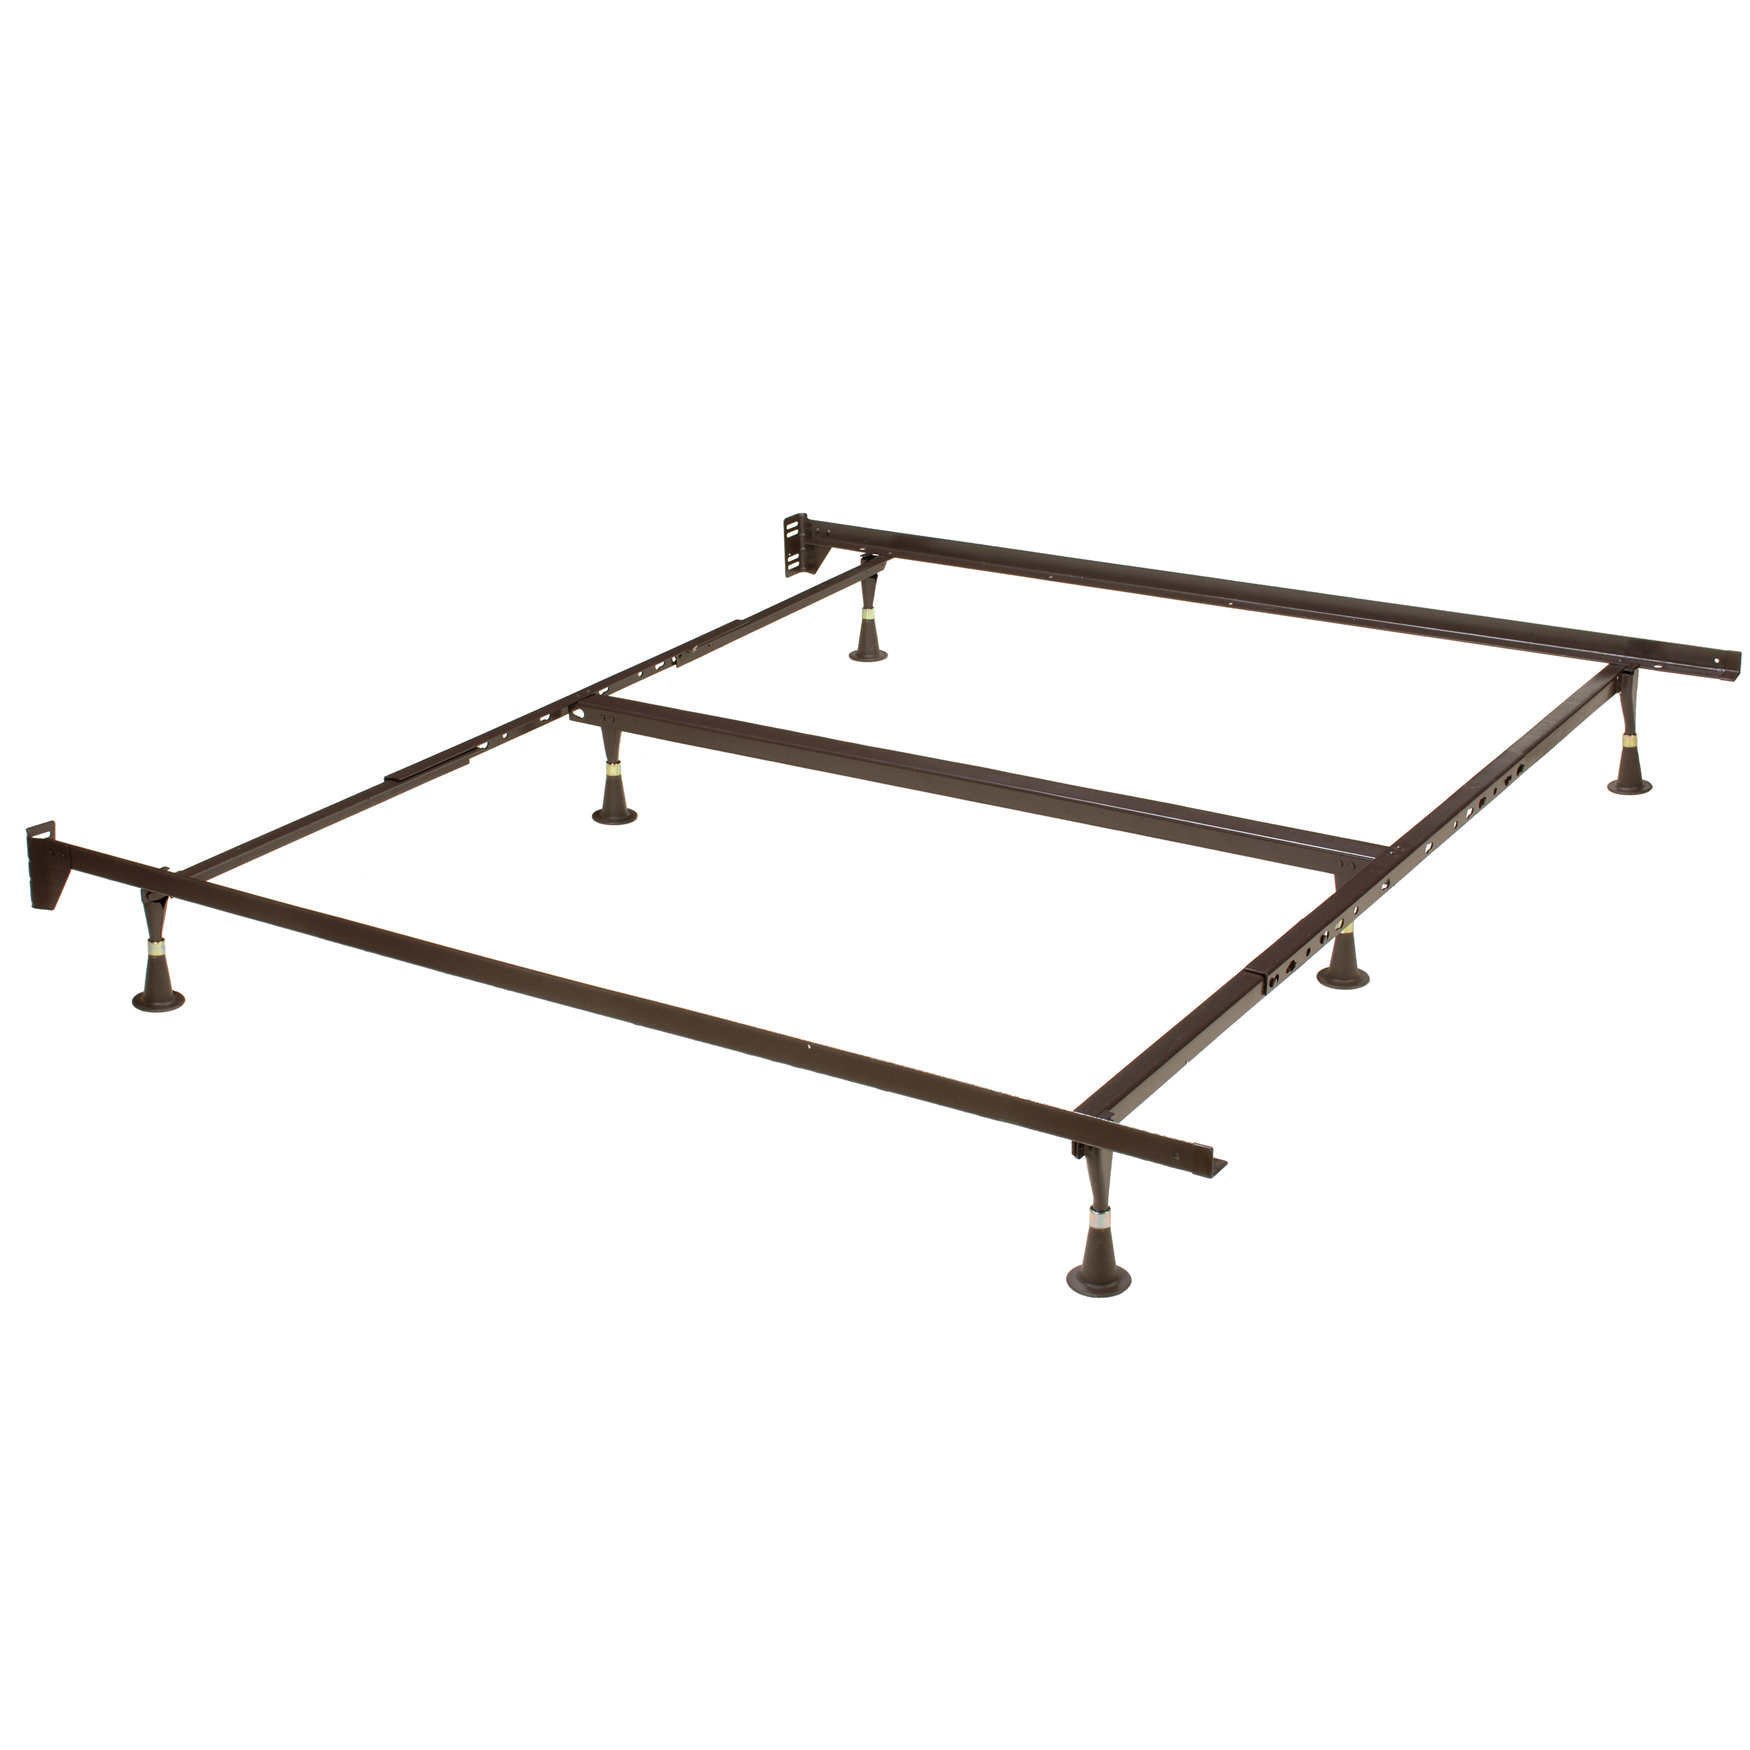 Hillsdale  6 Leg Queen/King Bed Frame, METAL